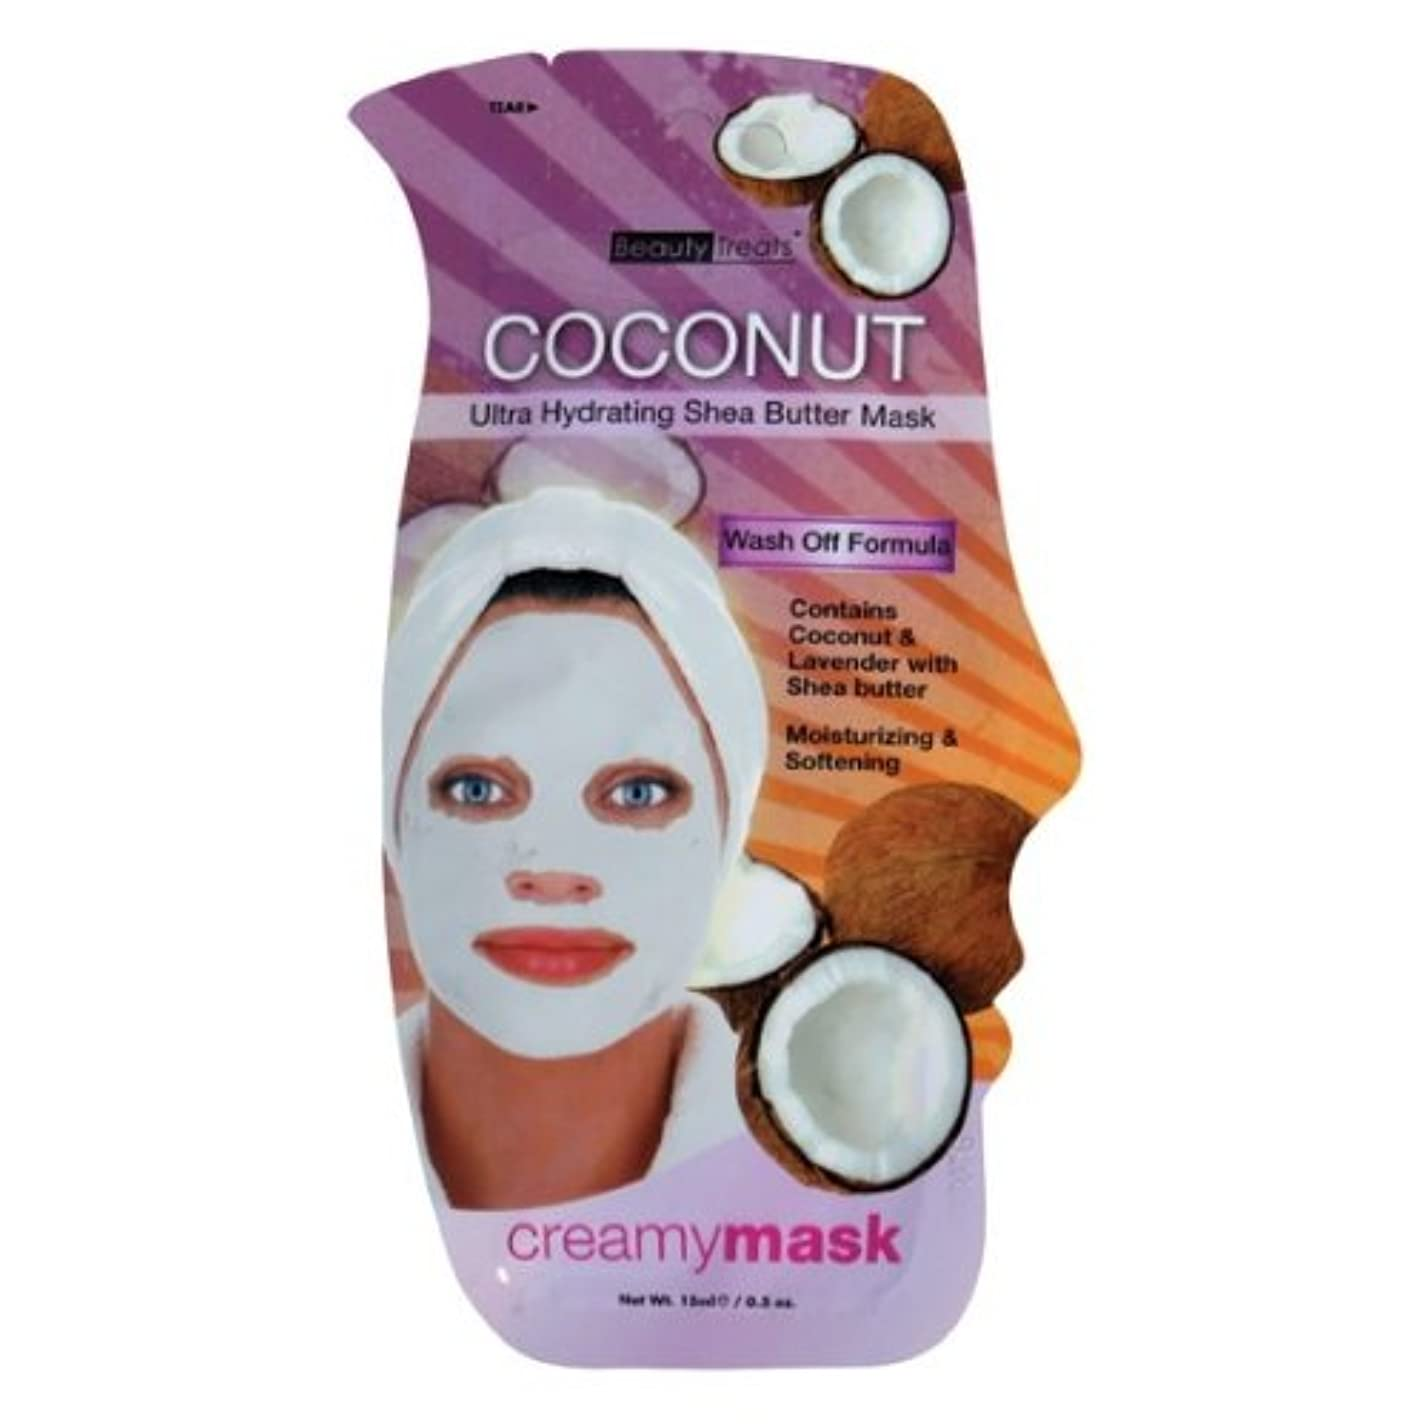 朝食を食べるオークスクレーパー(6 Pack) BEAUTY TREATS Coconut Ultra Hydrating Shea Butter Mask - Coconut (並行輸入品)